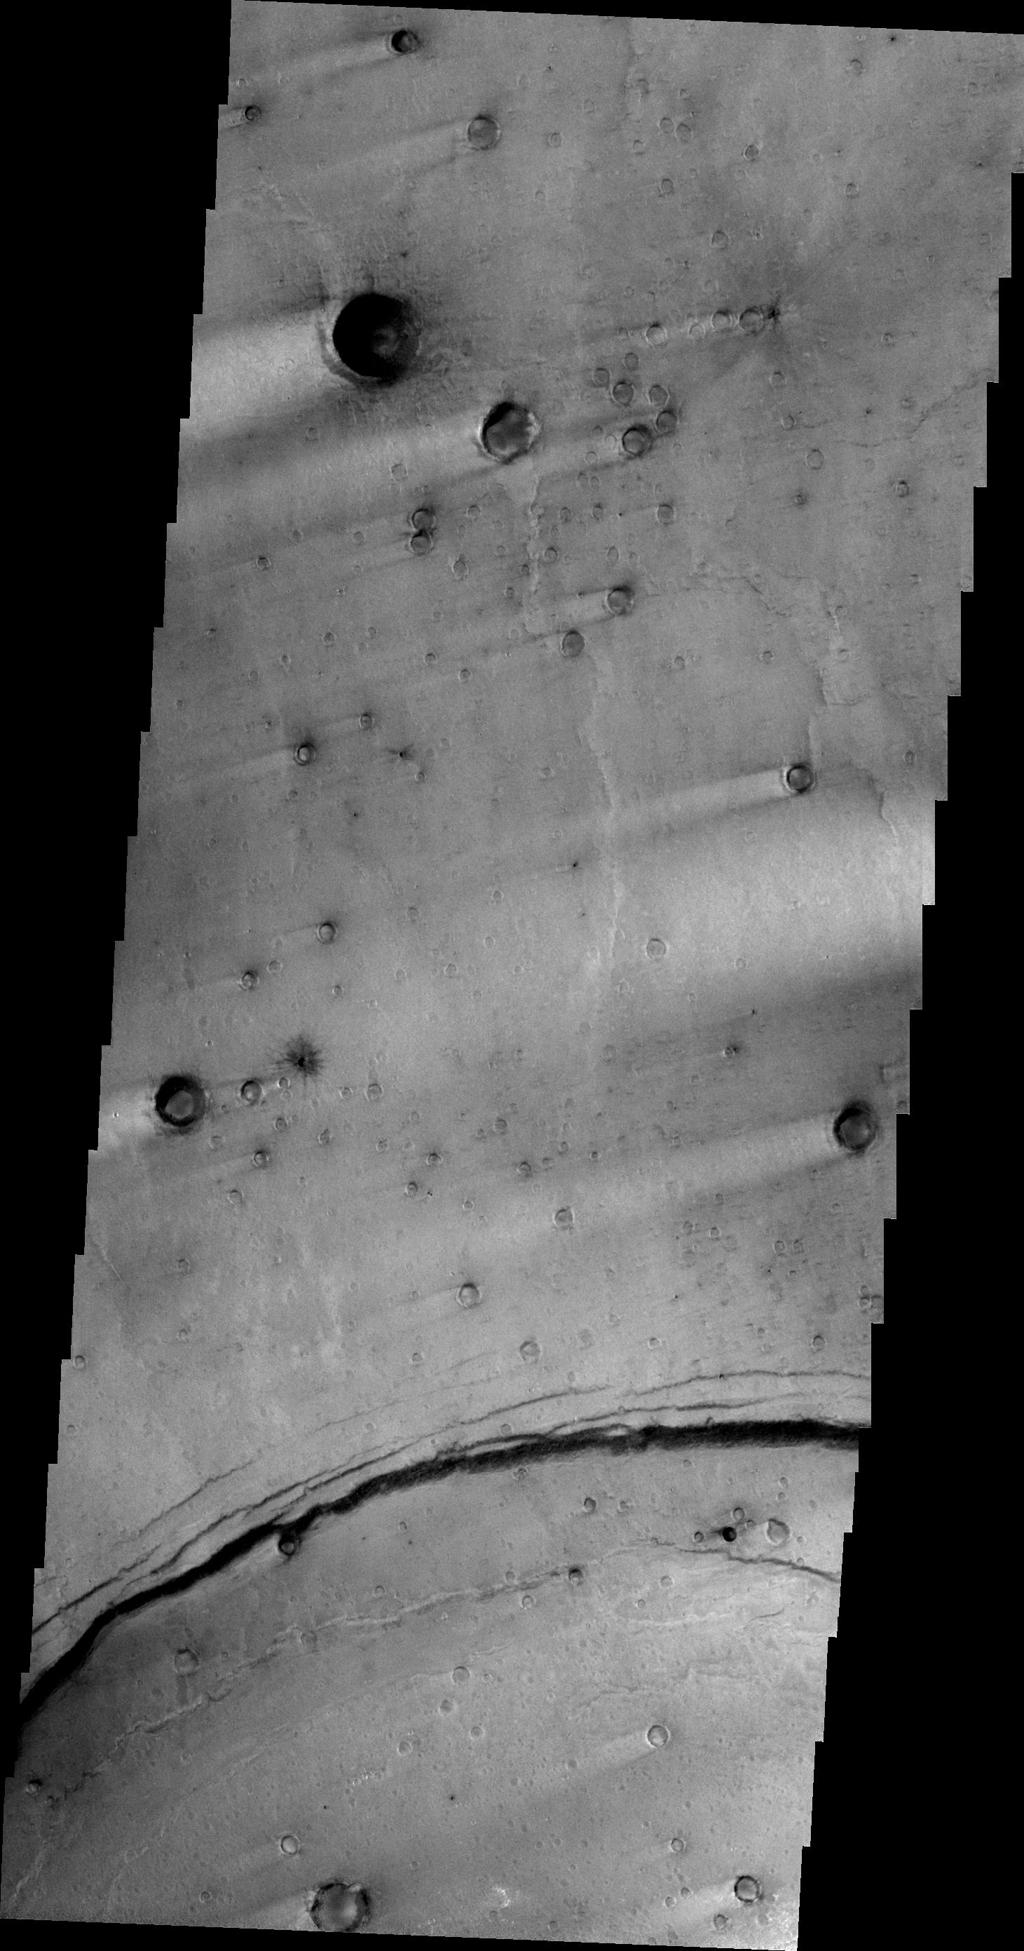 This image, taken by NASA's 2001 Mars Odyssey spacecraft, shows multiple craters with windstreak 'tails.'